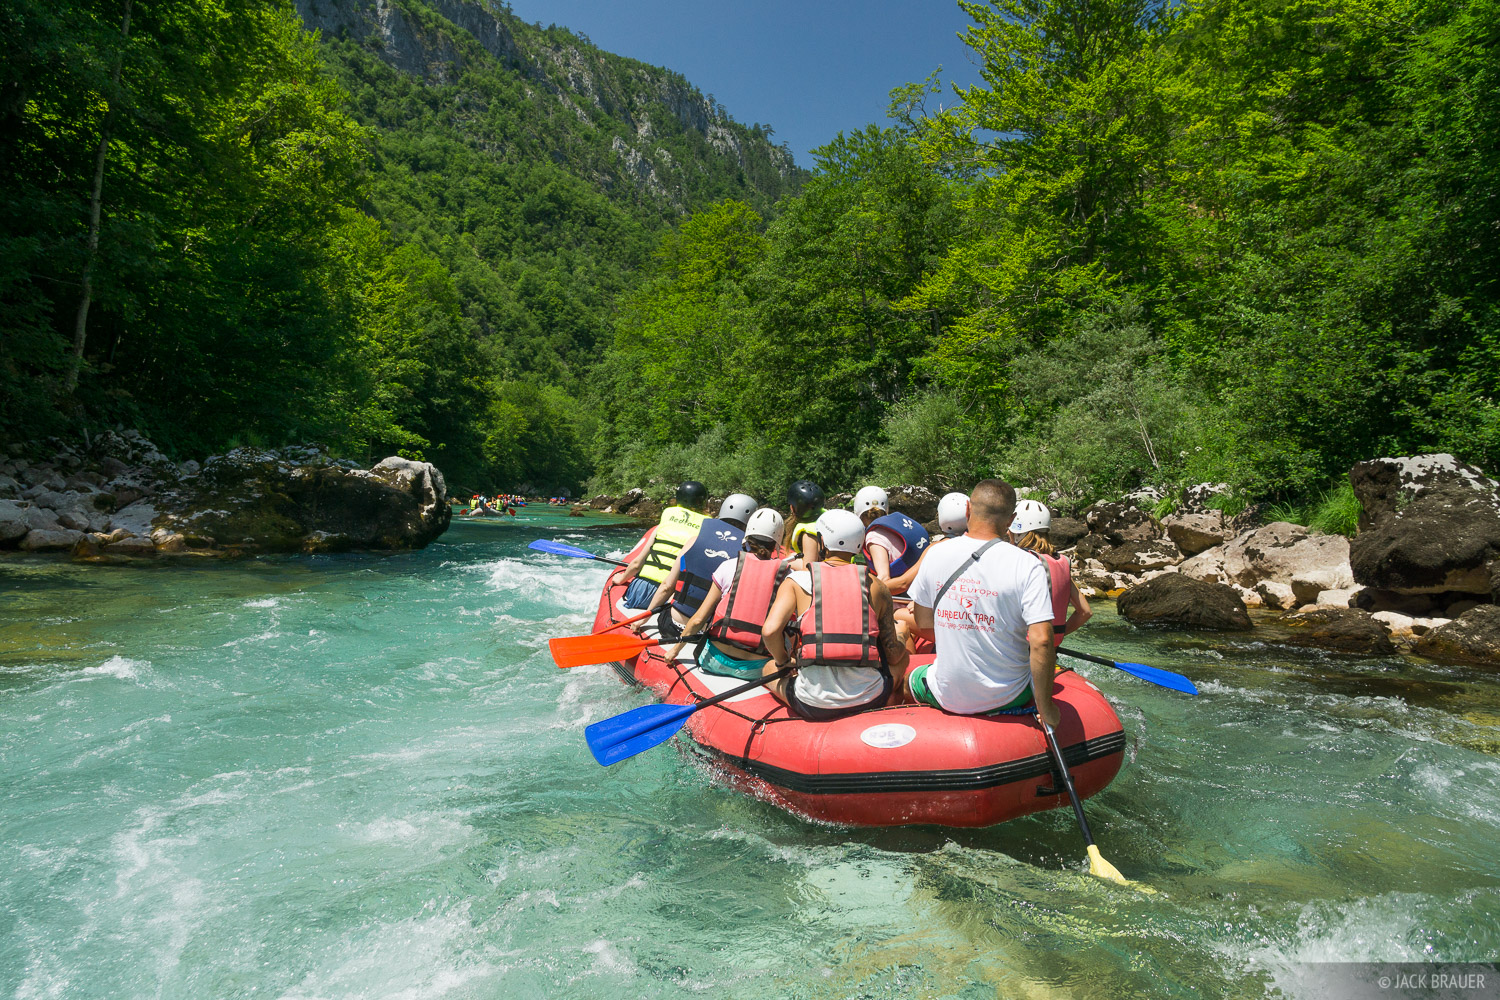 Tara River, Tara Bridge, Montenegro, rafting, photo